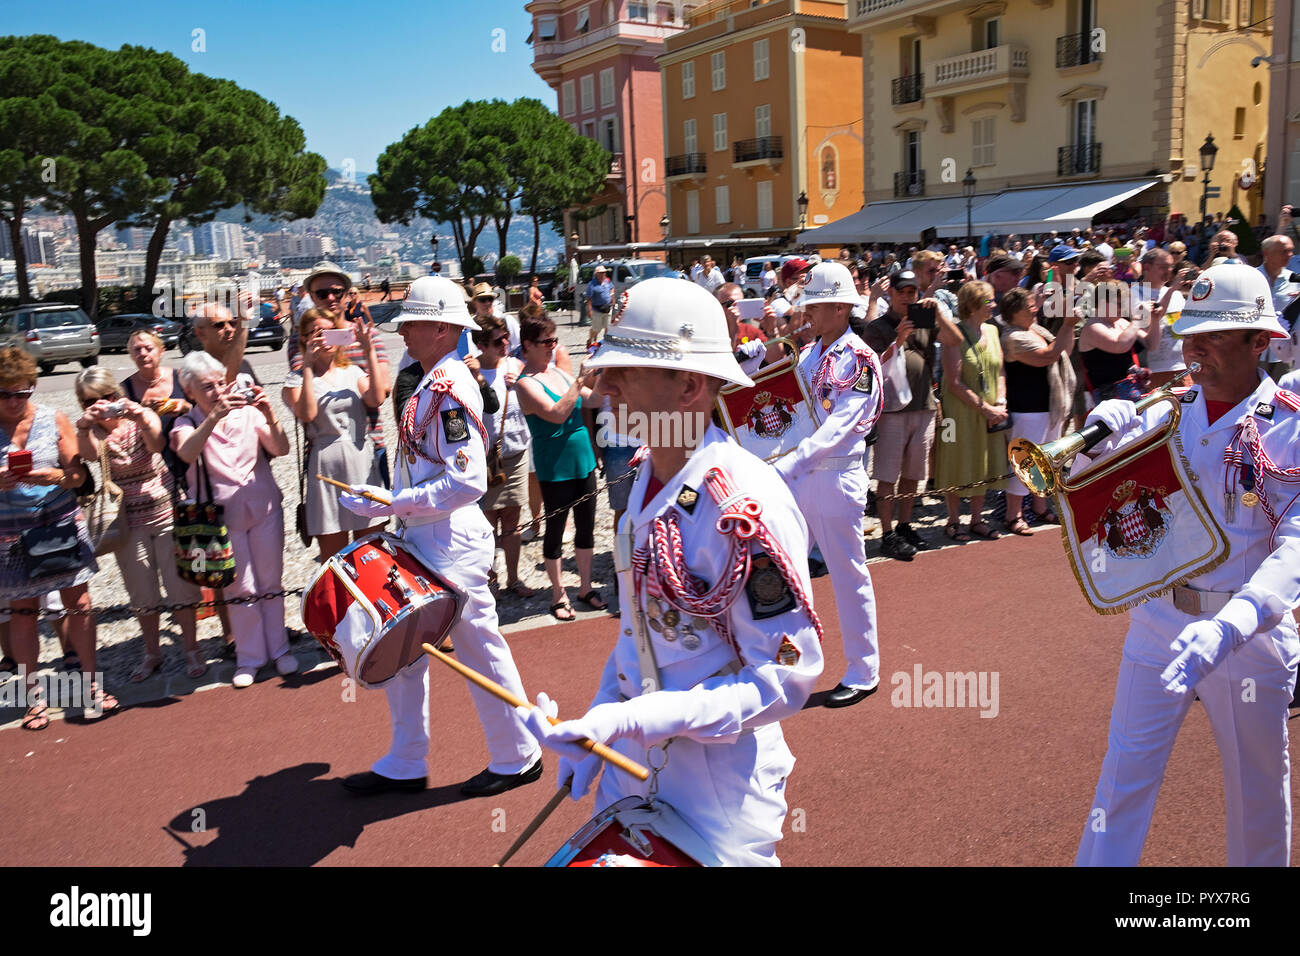 the changing of the guards at the royal palace in monaco - Stock Image